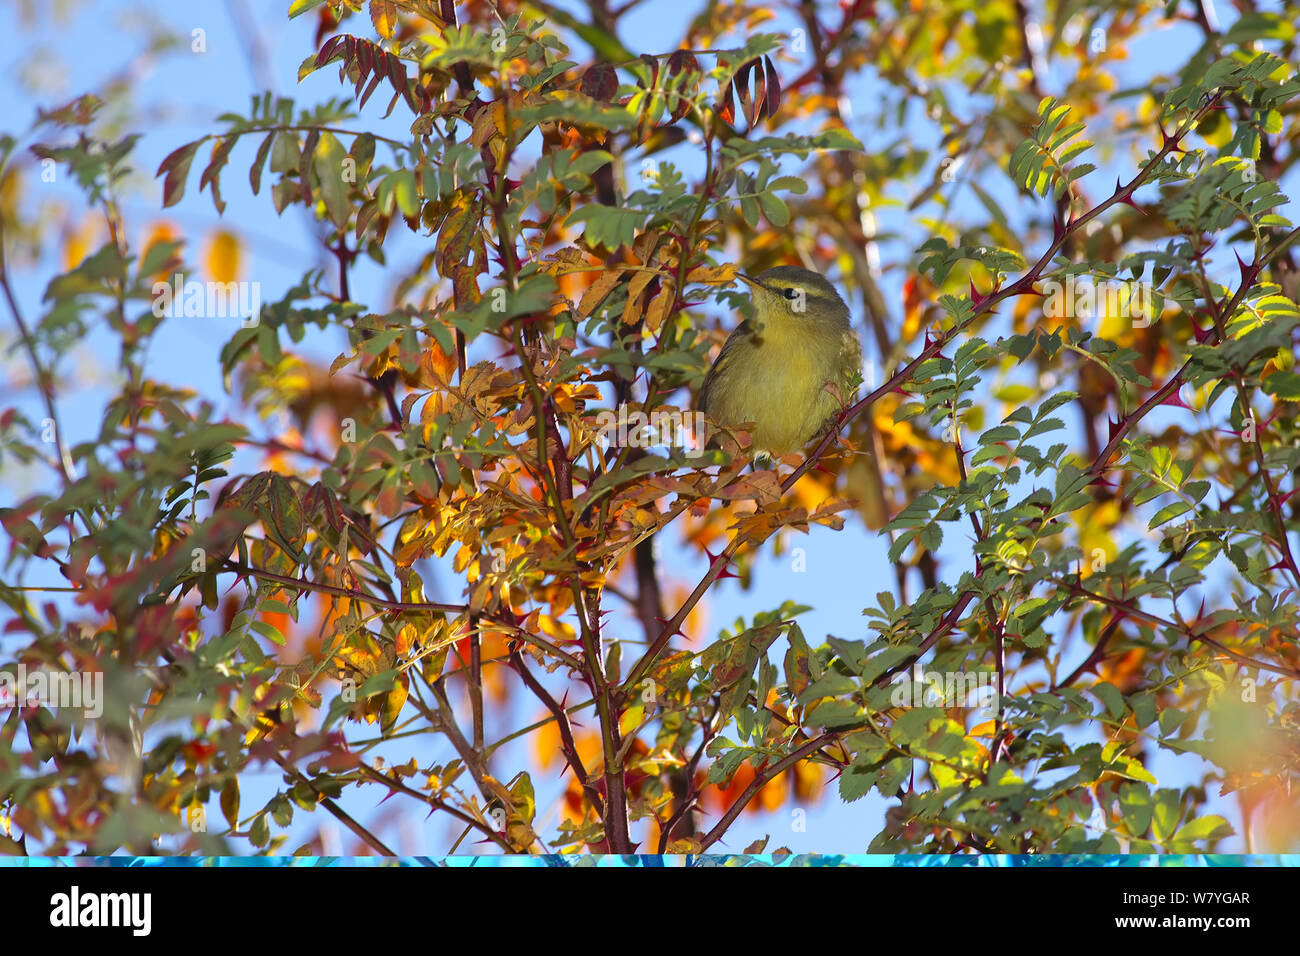 Tickell's leaf warbler (Phylloscopus affinis) perched in autumnal tree, Kawakarpo Mountain, Meri Snow Mountain National Park, Yunnan Province, China, October. Stock Photo